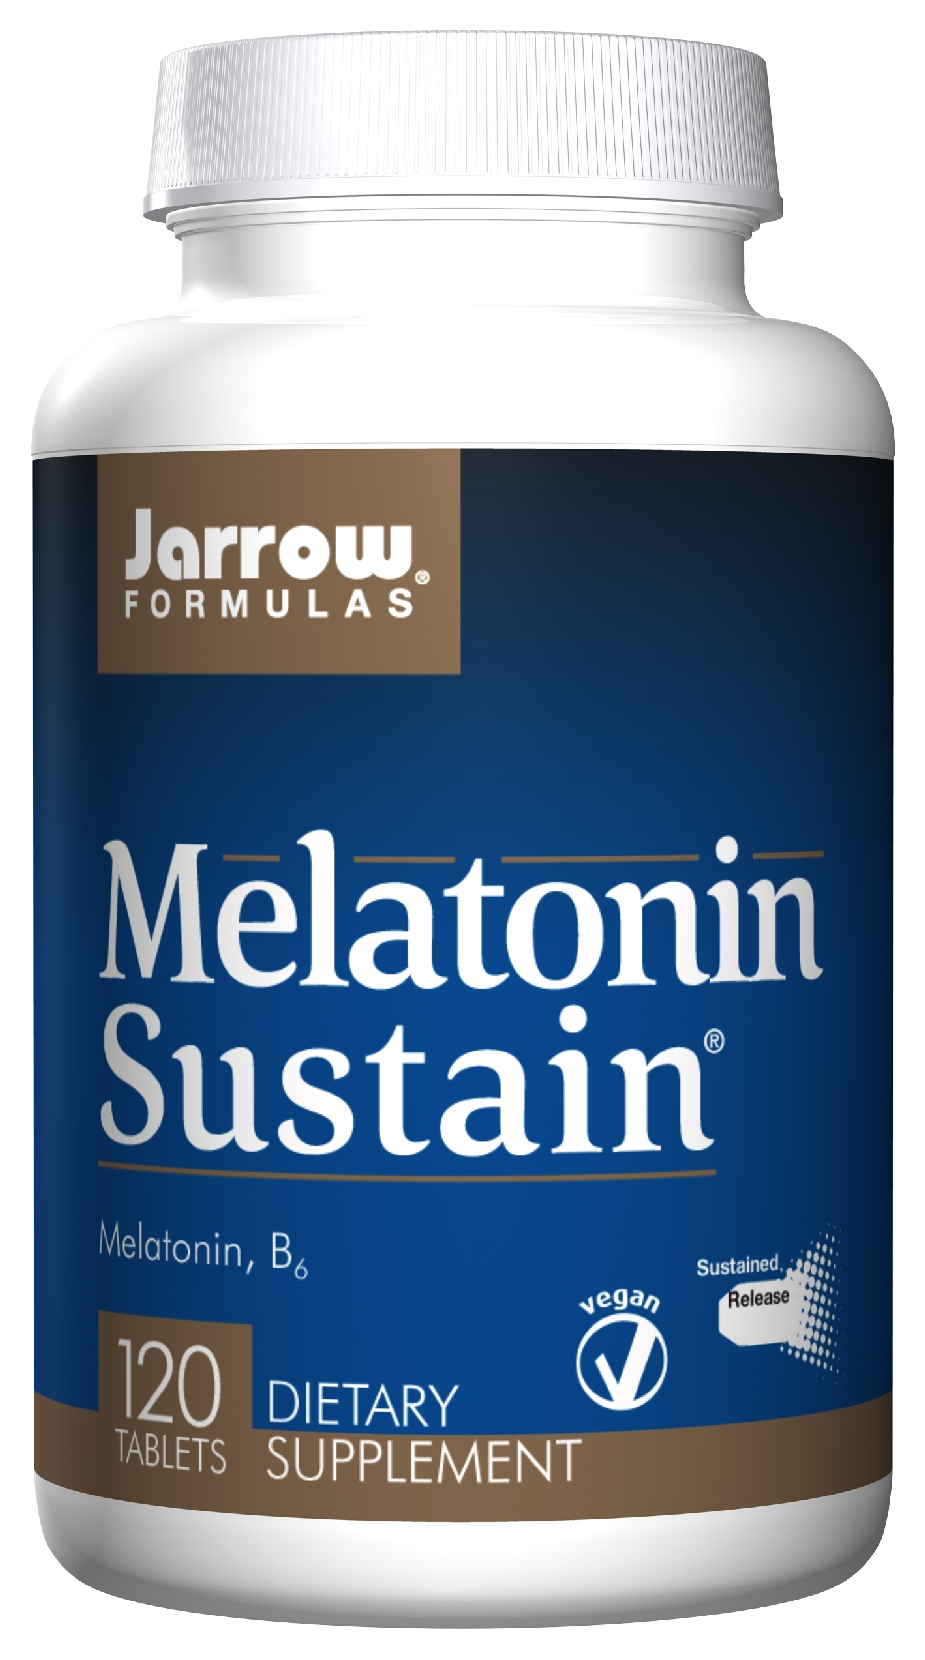 Melatonin Sustain 120 tabs by Jarrow Formulas